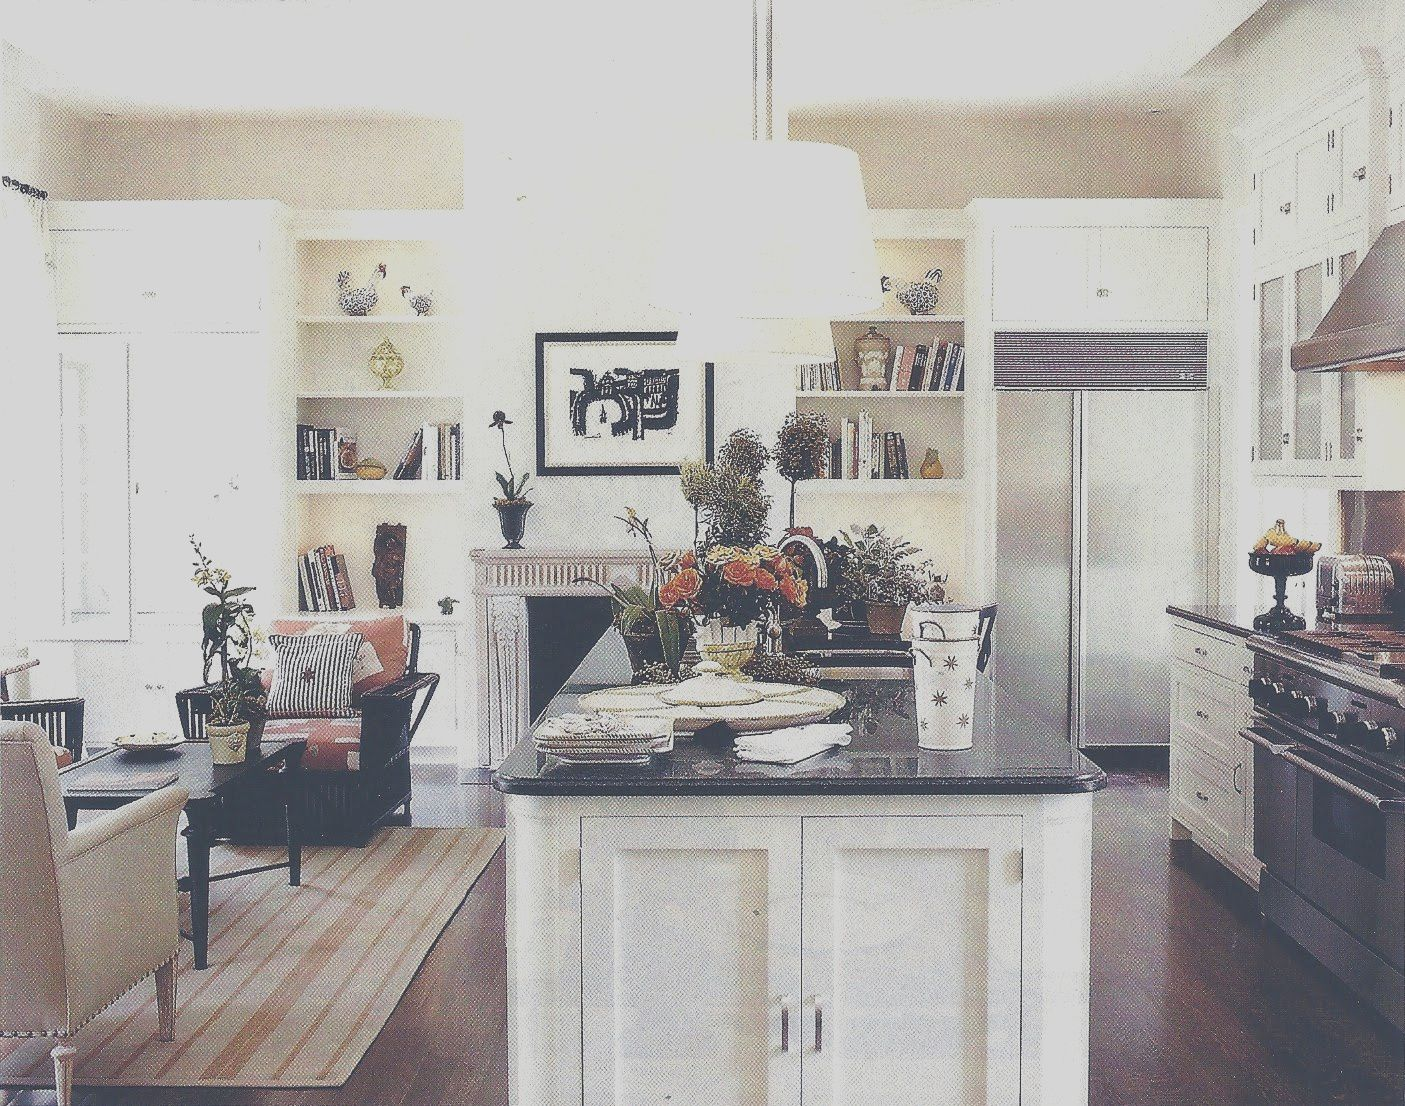 8 Artistic Kitchen Ideas Notting Hill Image In 2020 Kitchen Sitting Areas Kitchen Dinning Room Kitchen Design